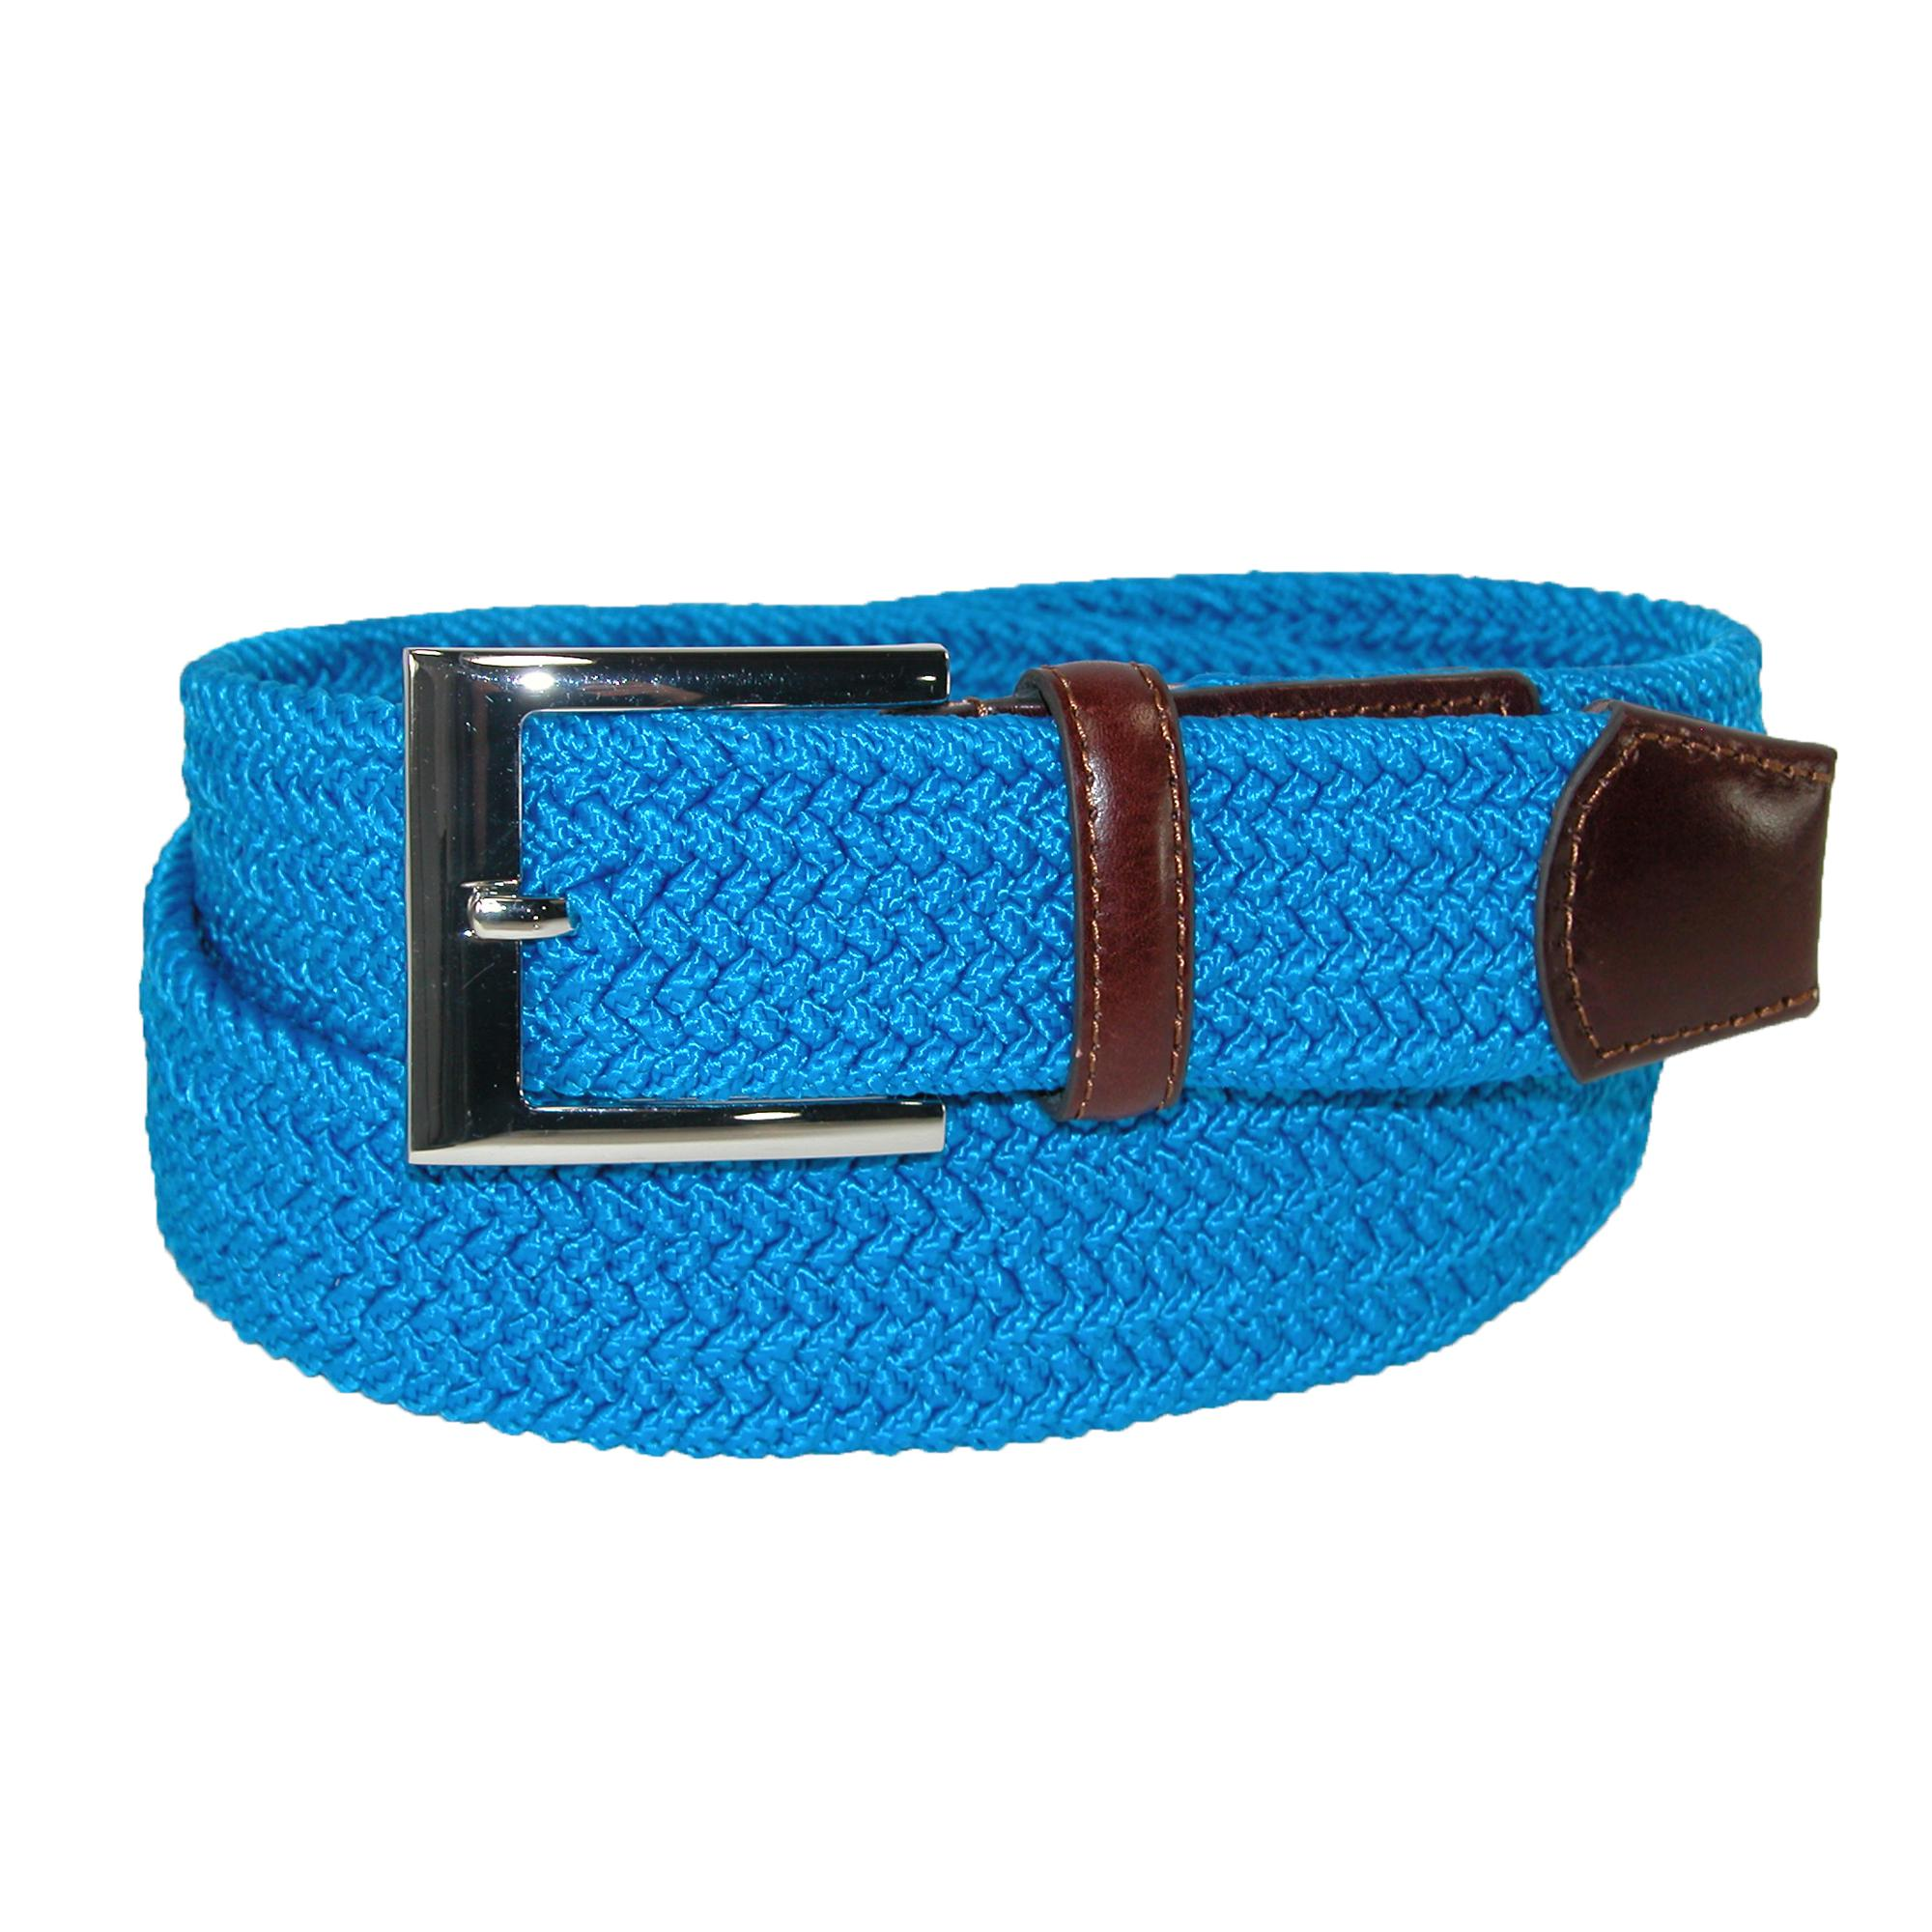 Pga Tour Mens Fabric Braided Stretch Golf Belt With Leather End Tabs